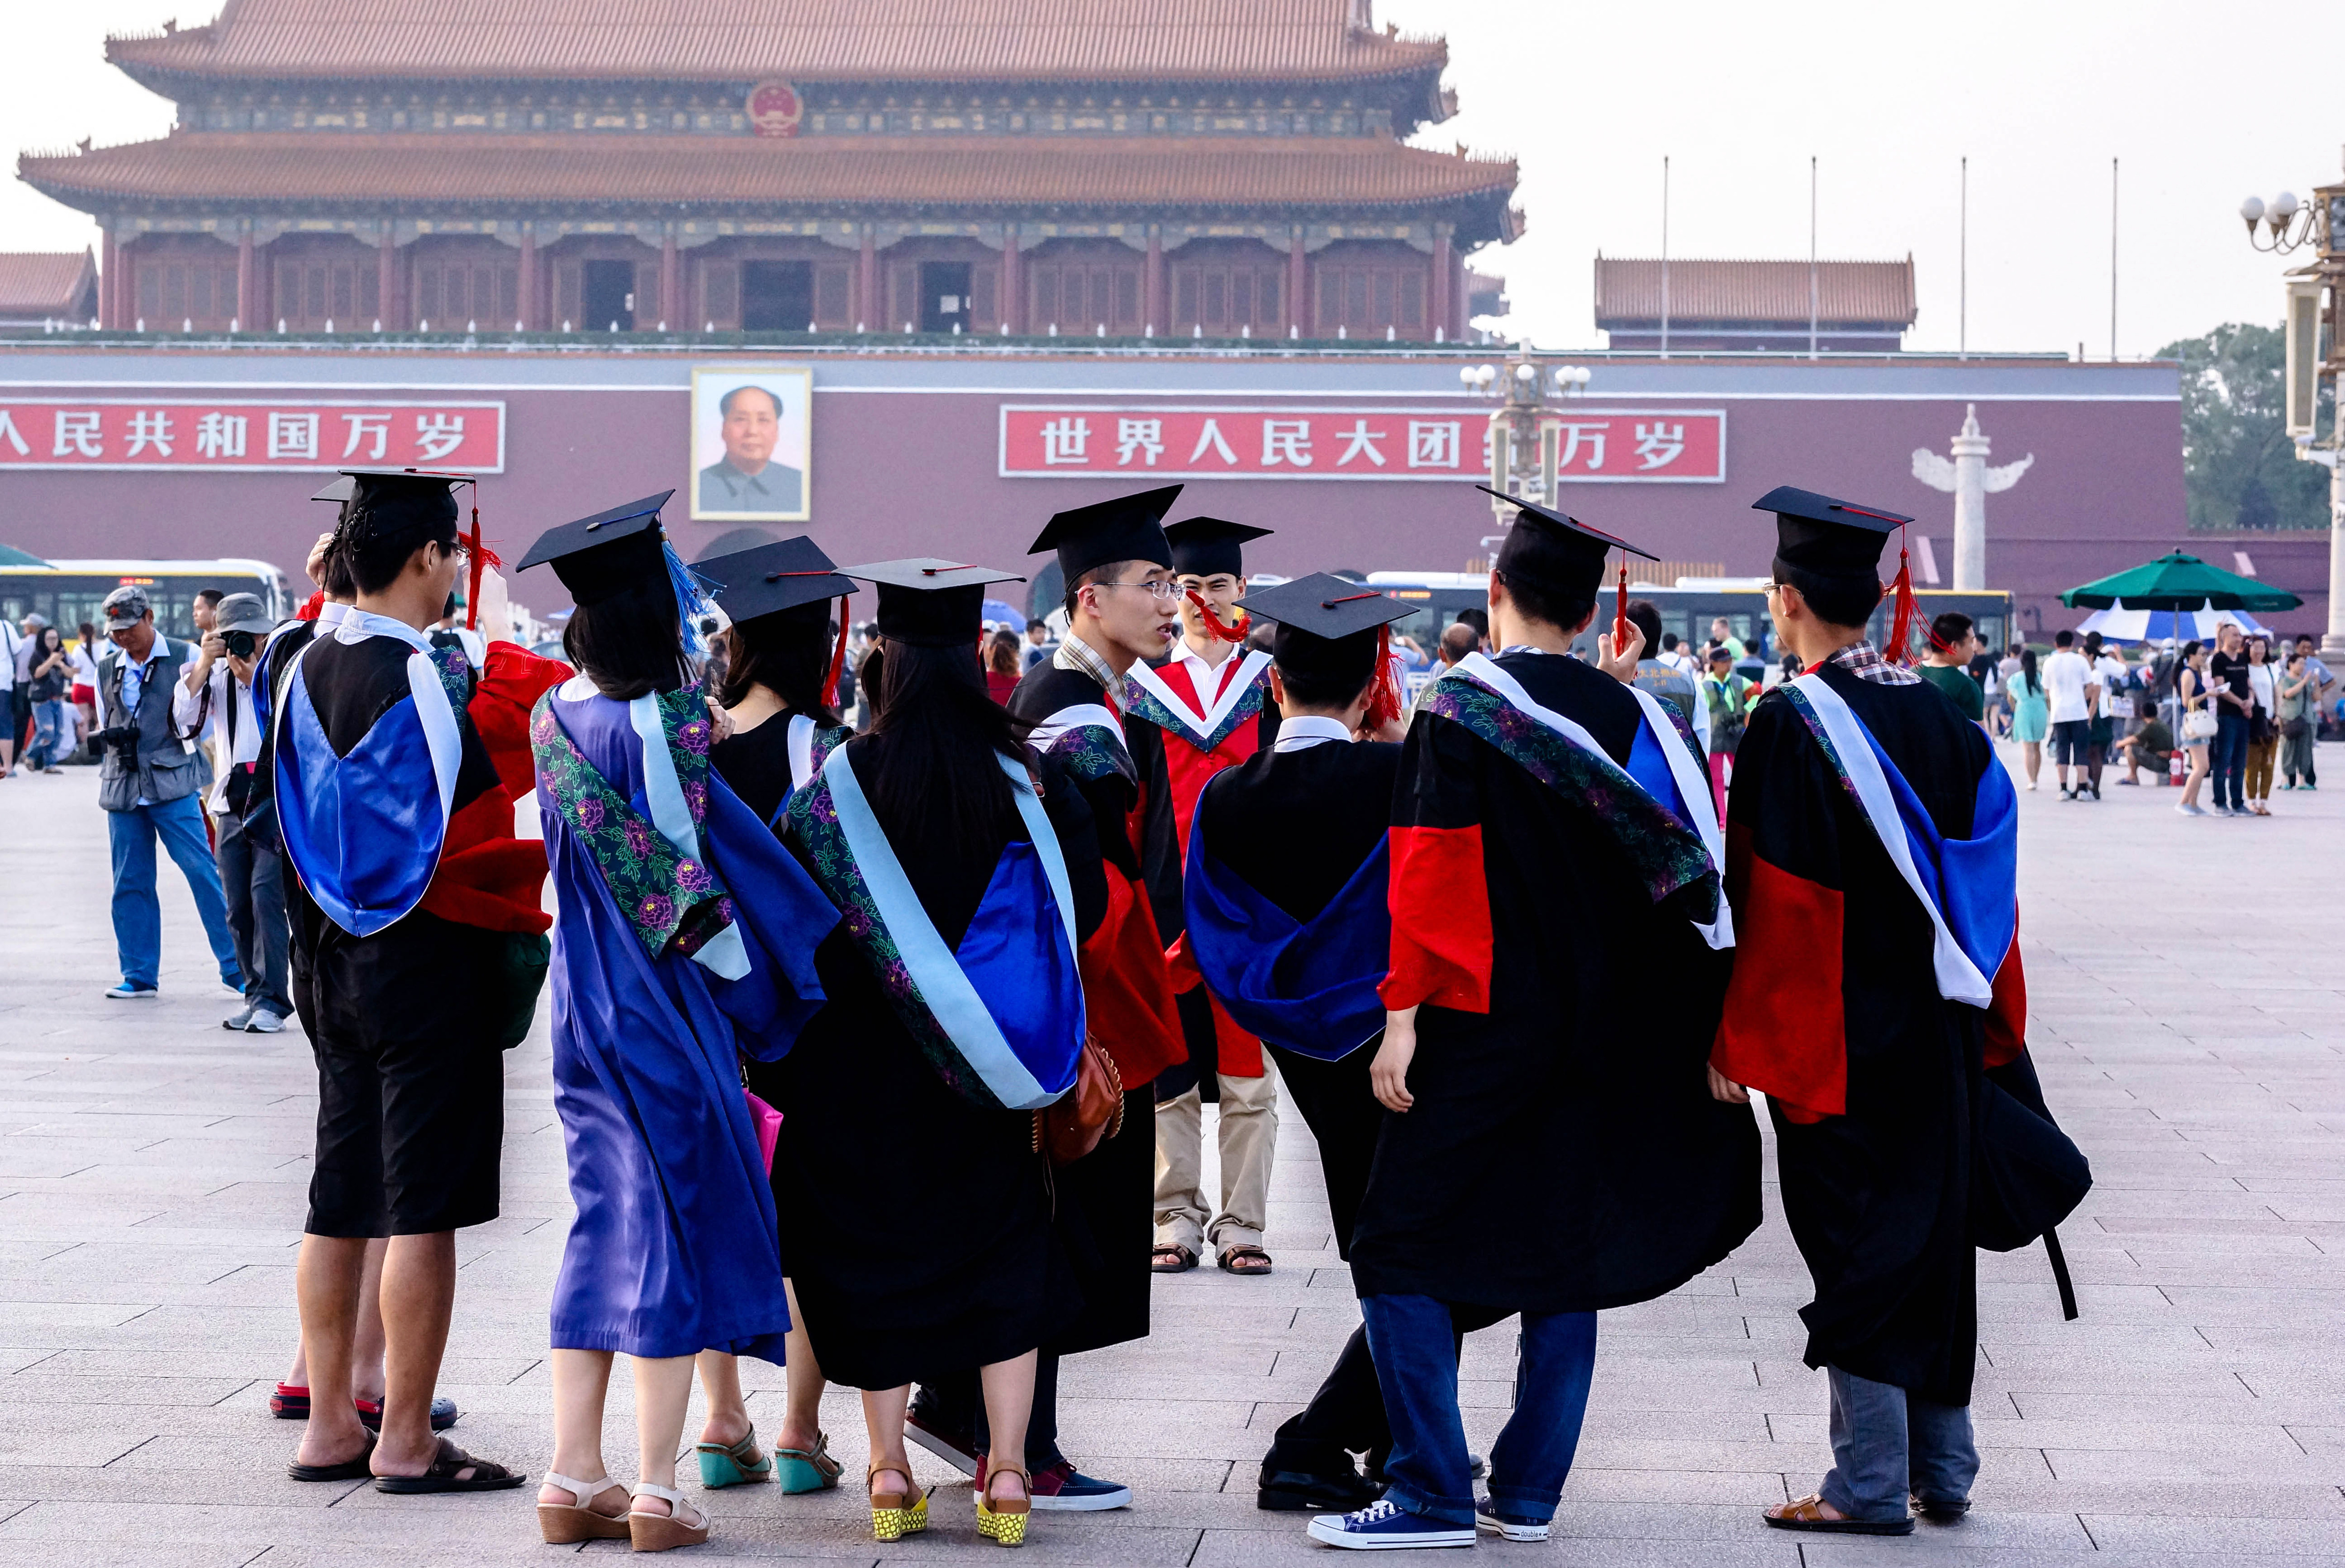 Graduates from Peking Union Medical College take commemorative photos in Tienanmen Square, Beijing, China, June 19, 2014